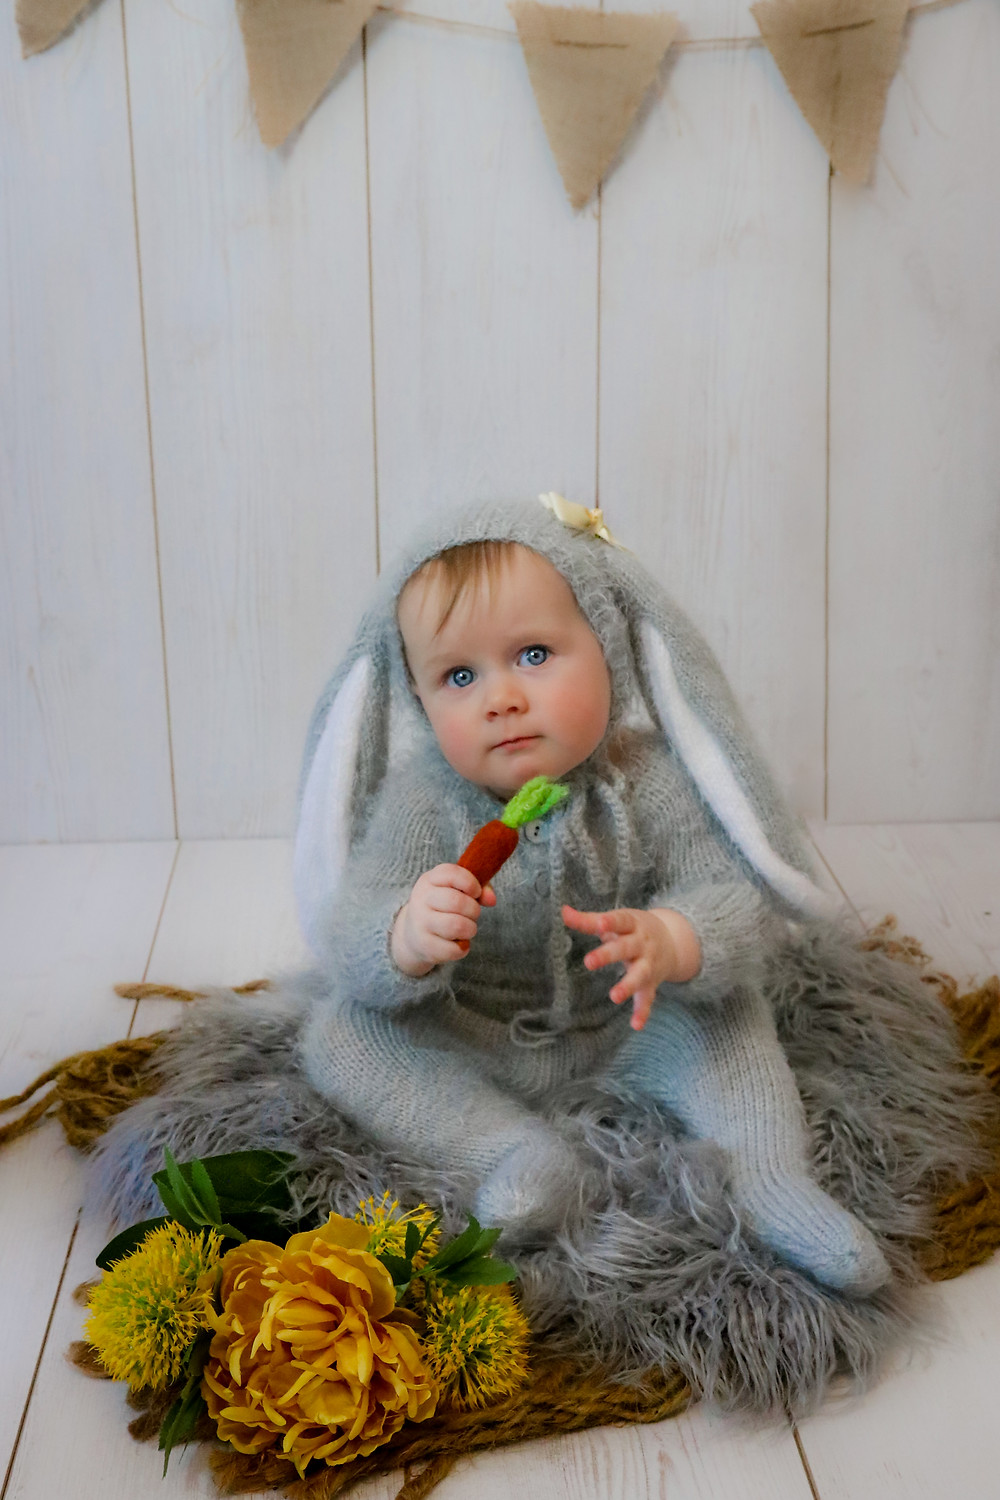 toddler girl sitting on grey furry rug wearing grey bunny outfit with bunny ears